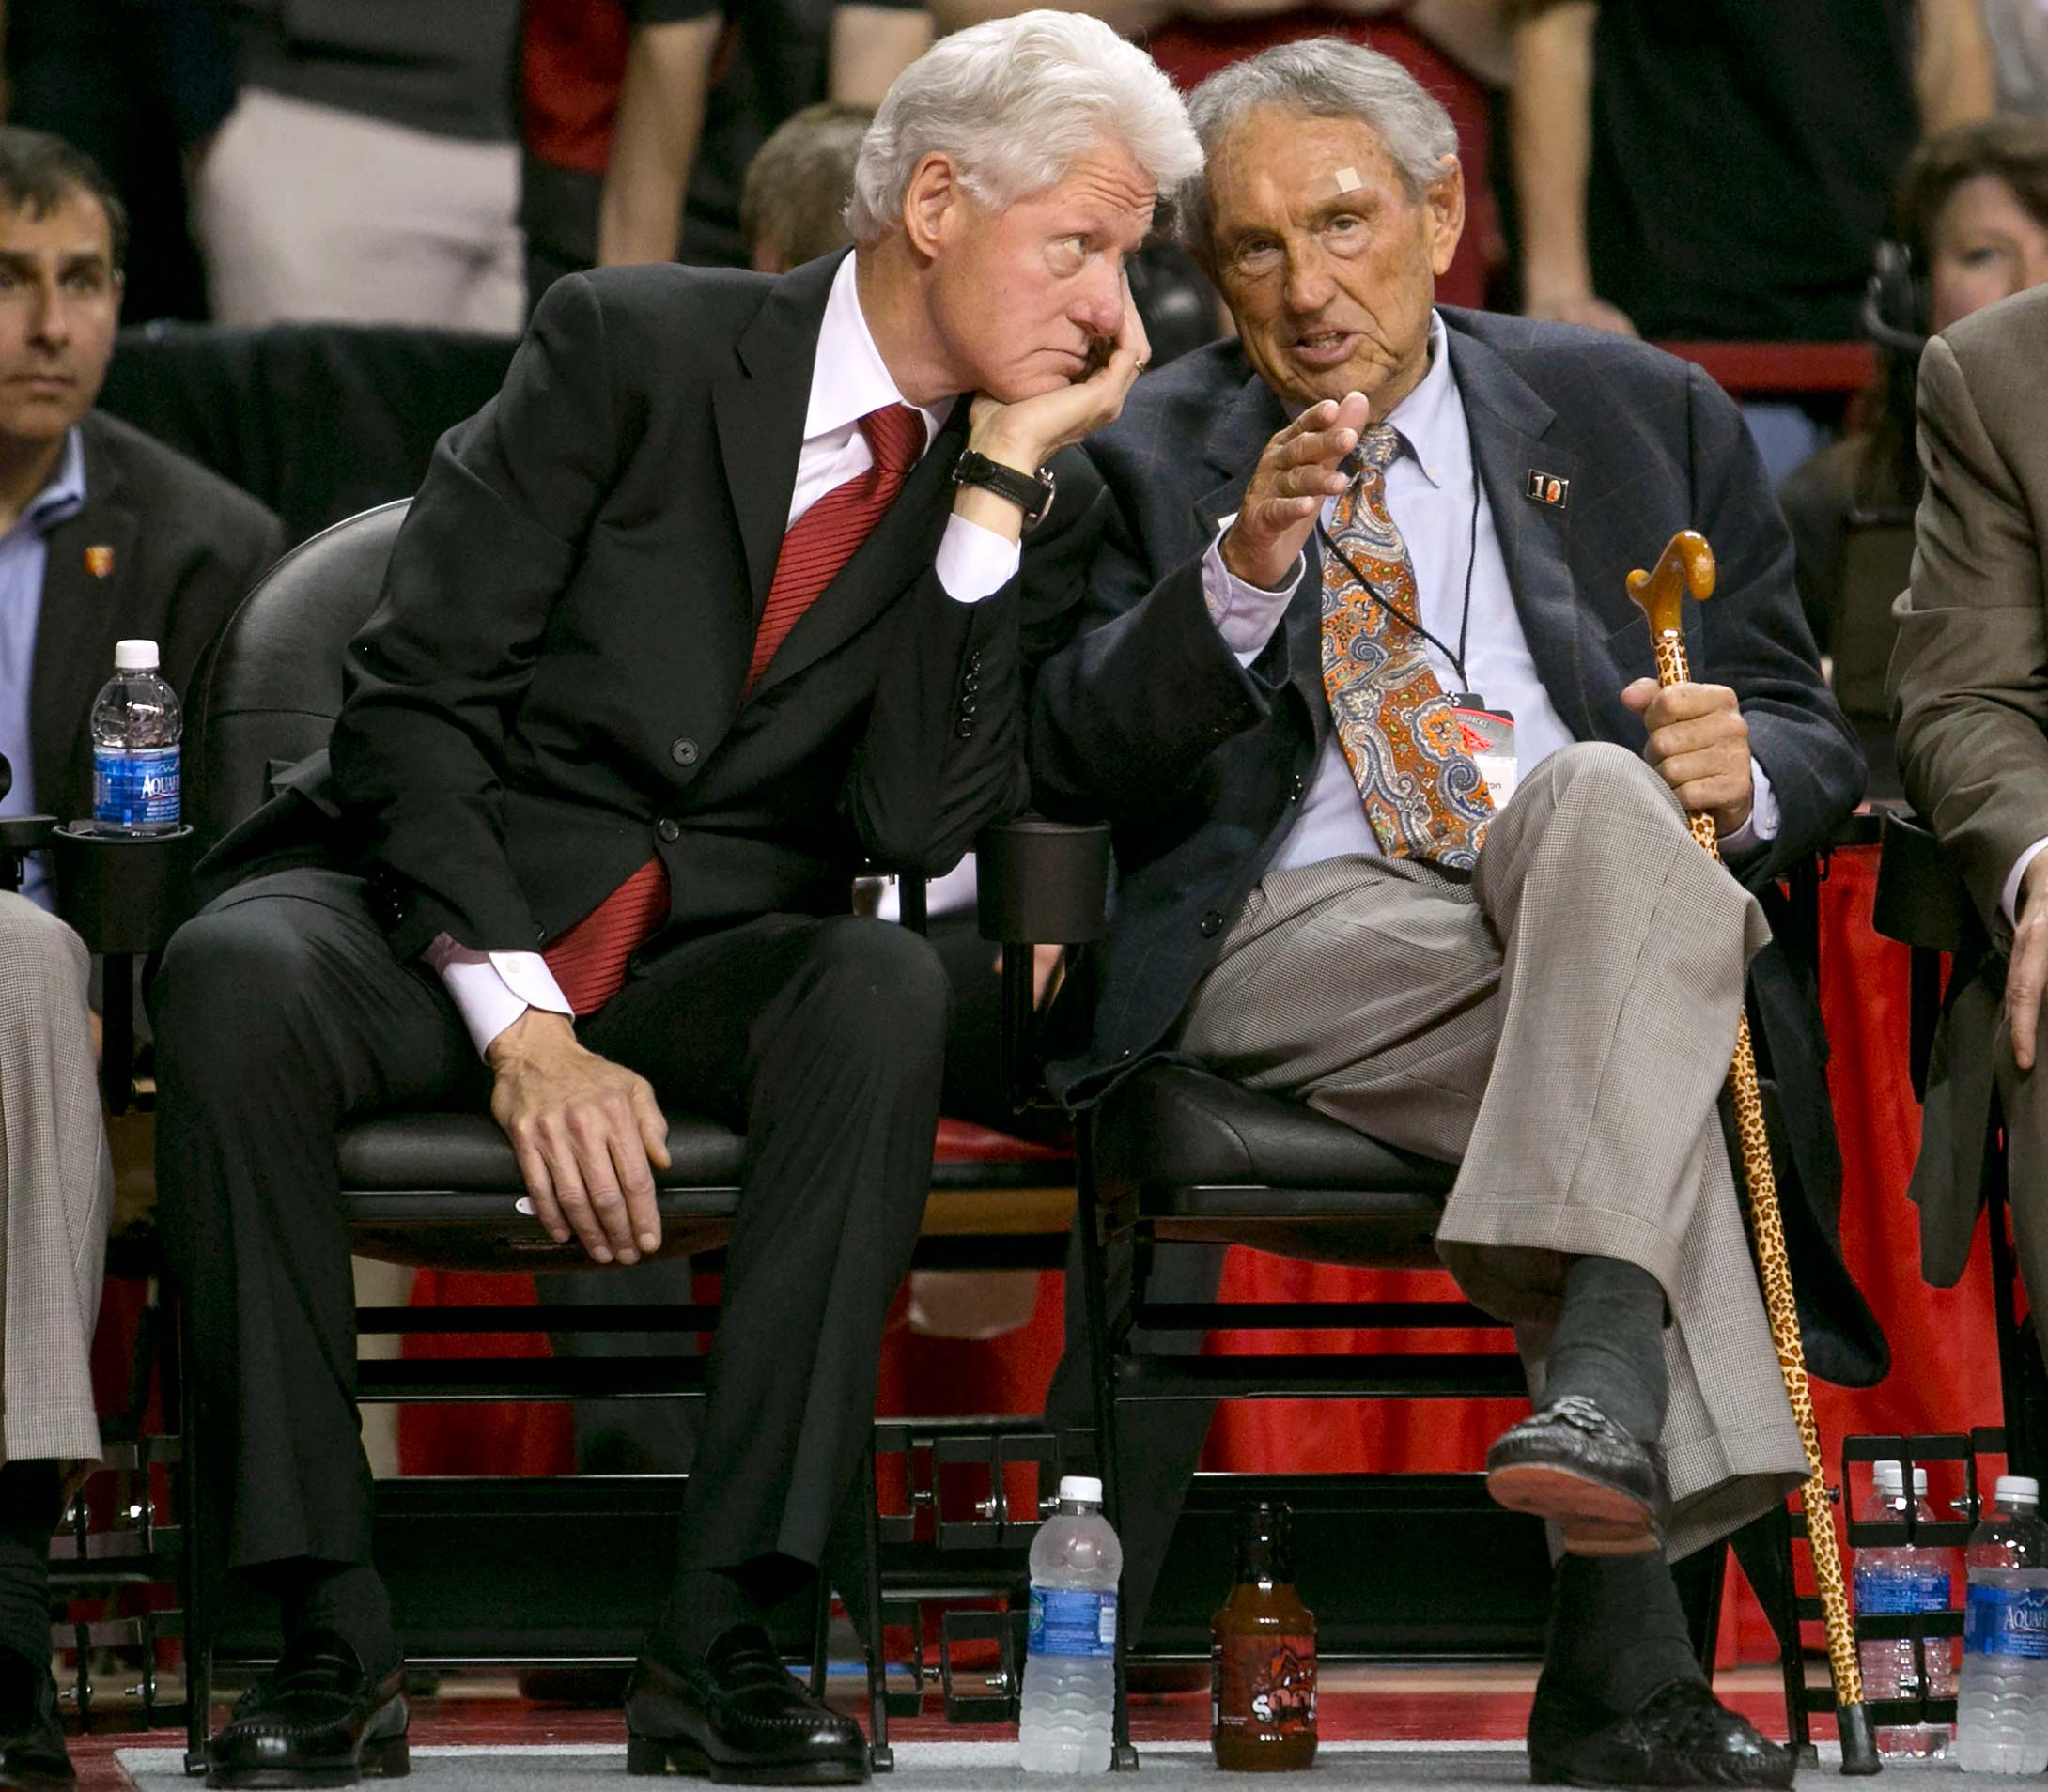 Former president Bill Clinton and former Arkansas coach Eddie Sutton during a 2014 game between Arkansas and LSU in Fayetteville, Ark.